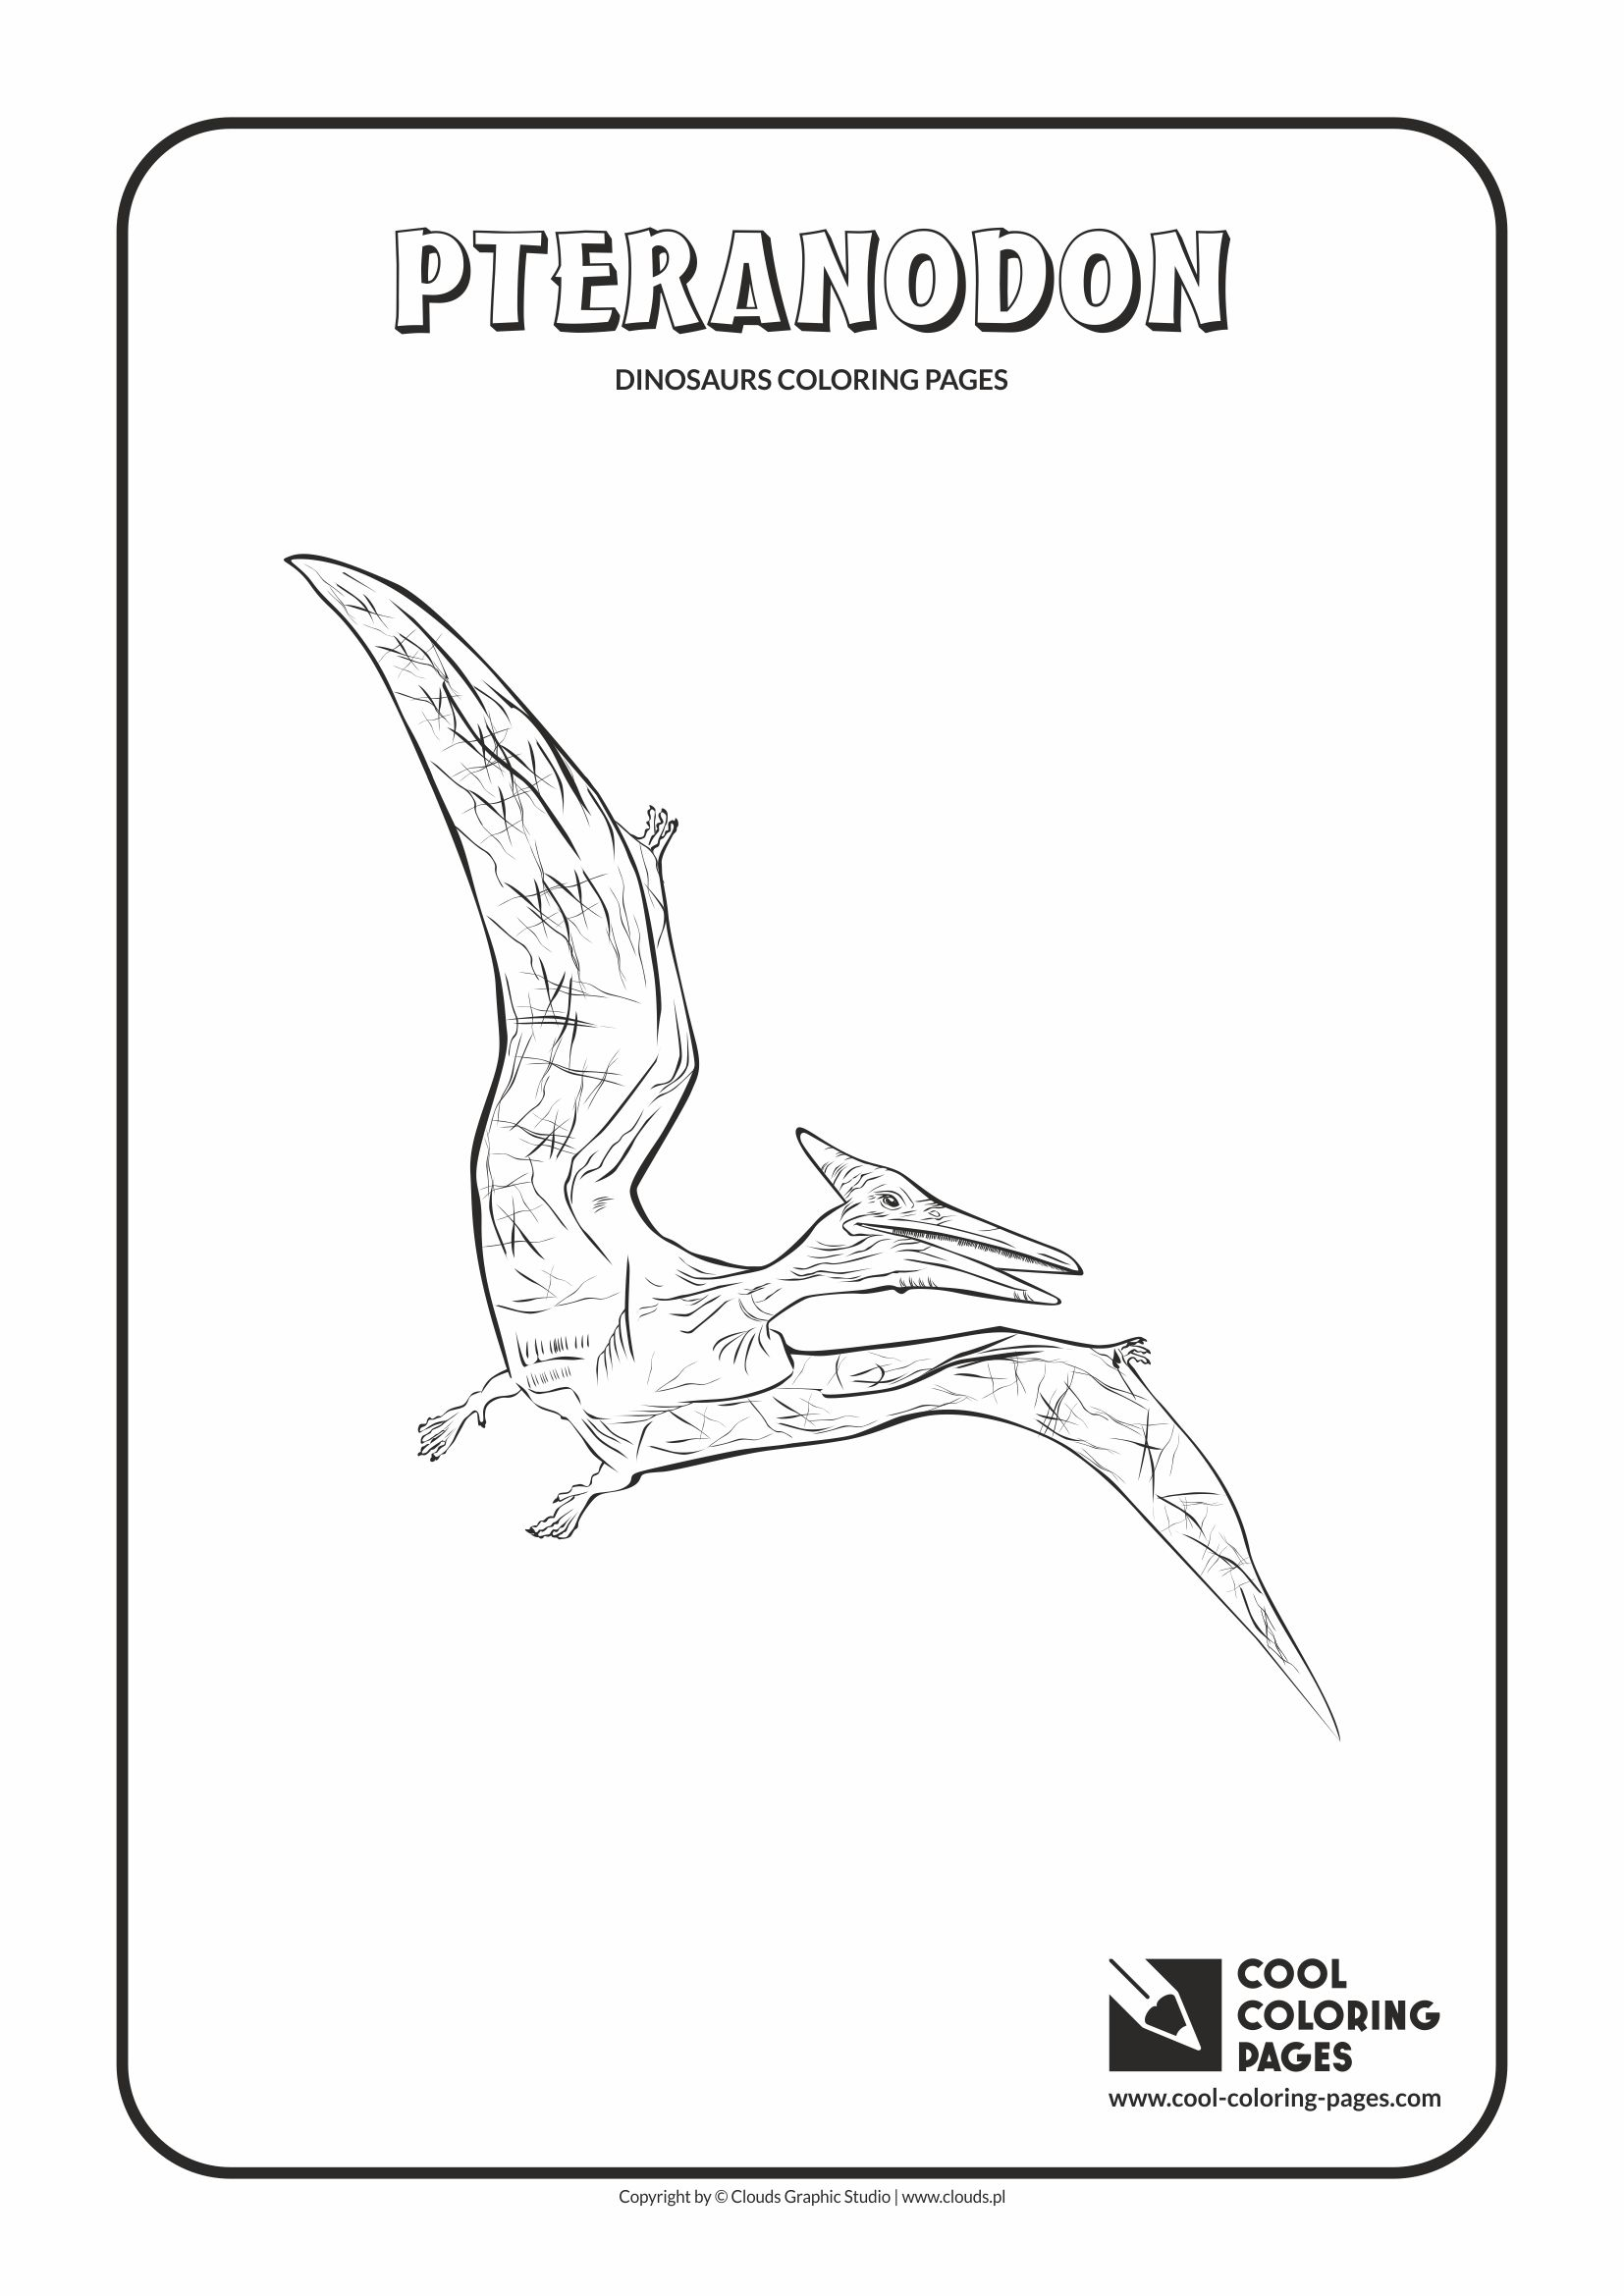 Cool Coloring Pages - Animals / Pteranodon / Coloring page with pteranodon